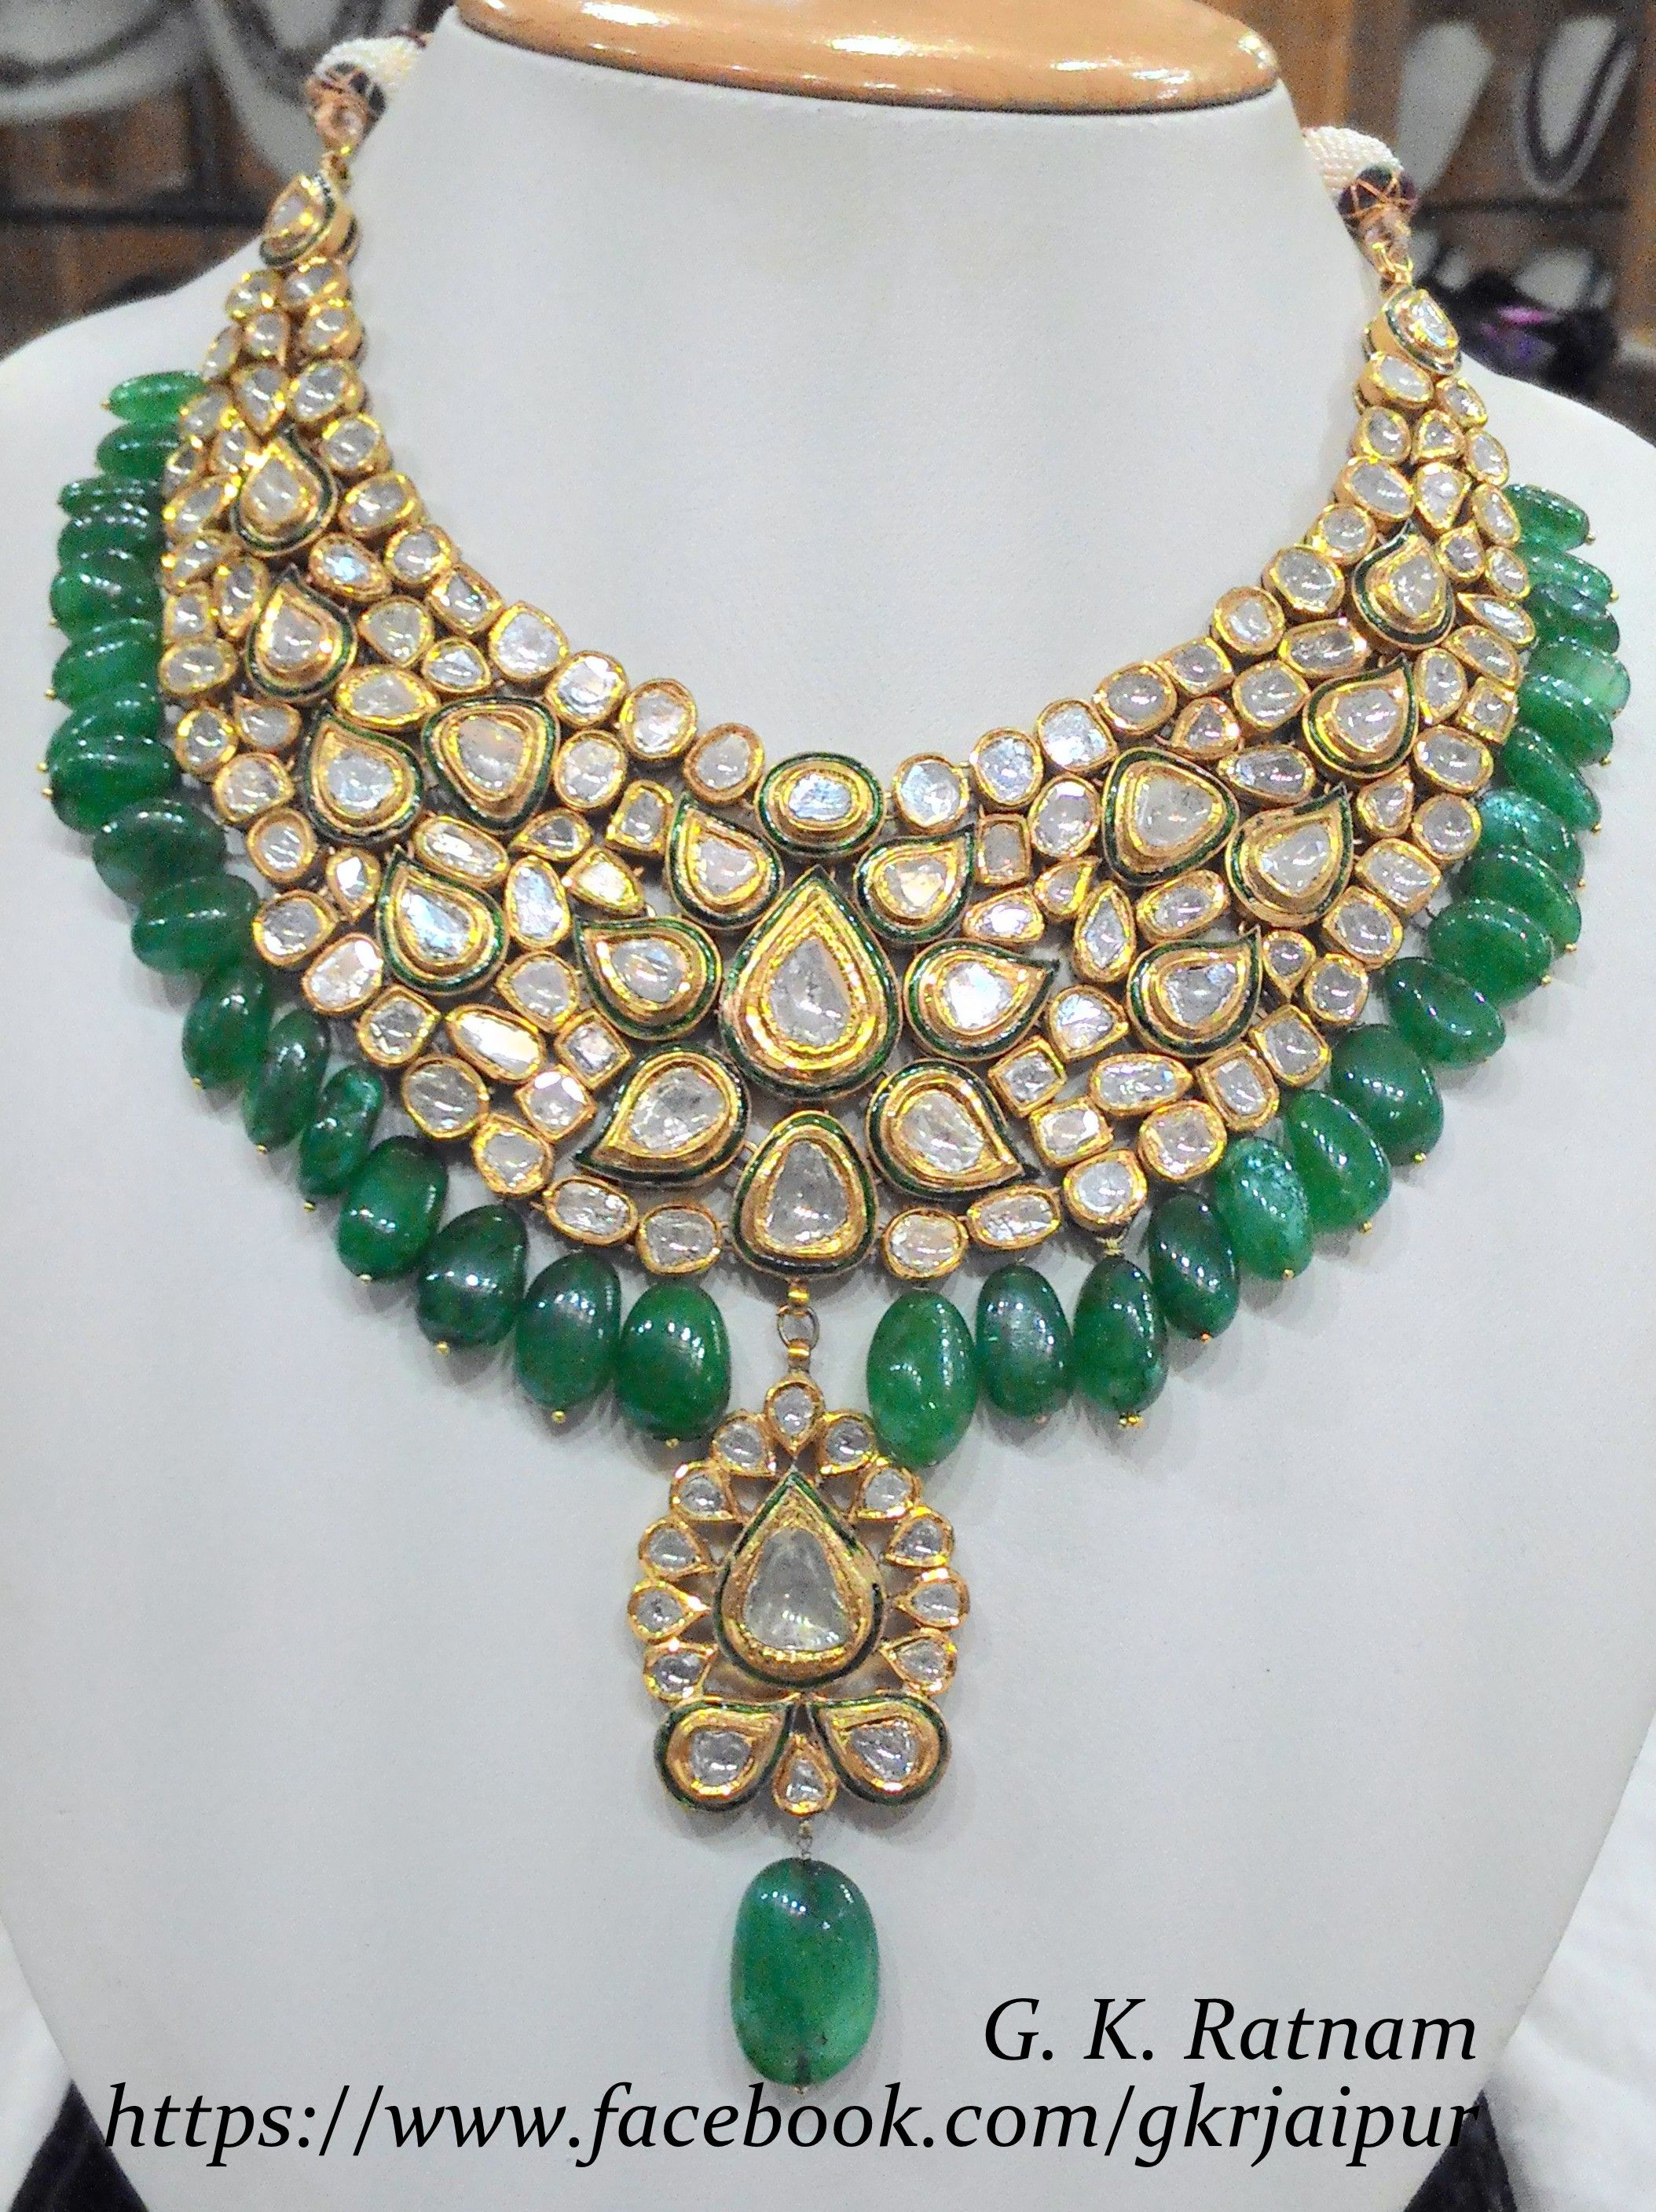 Green Meenakari Diamond Polki Necklace With Beryl Drops  Vilandi Jewelry   Diamond Polki Jewelry  Indian Wedding